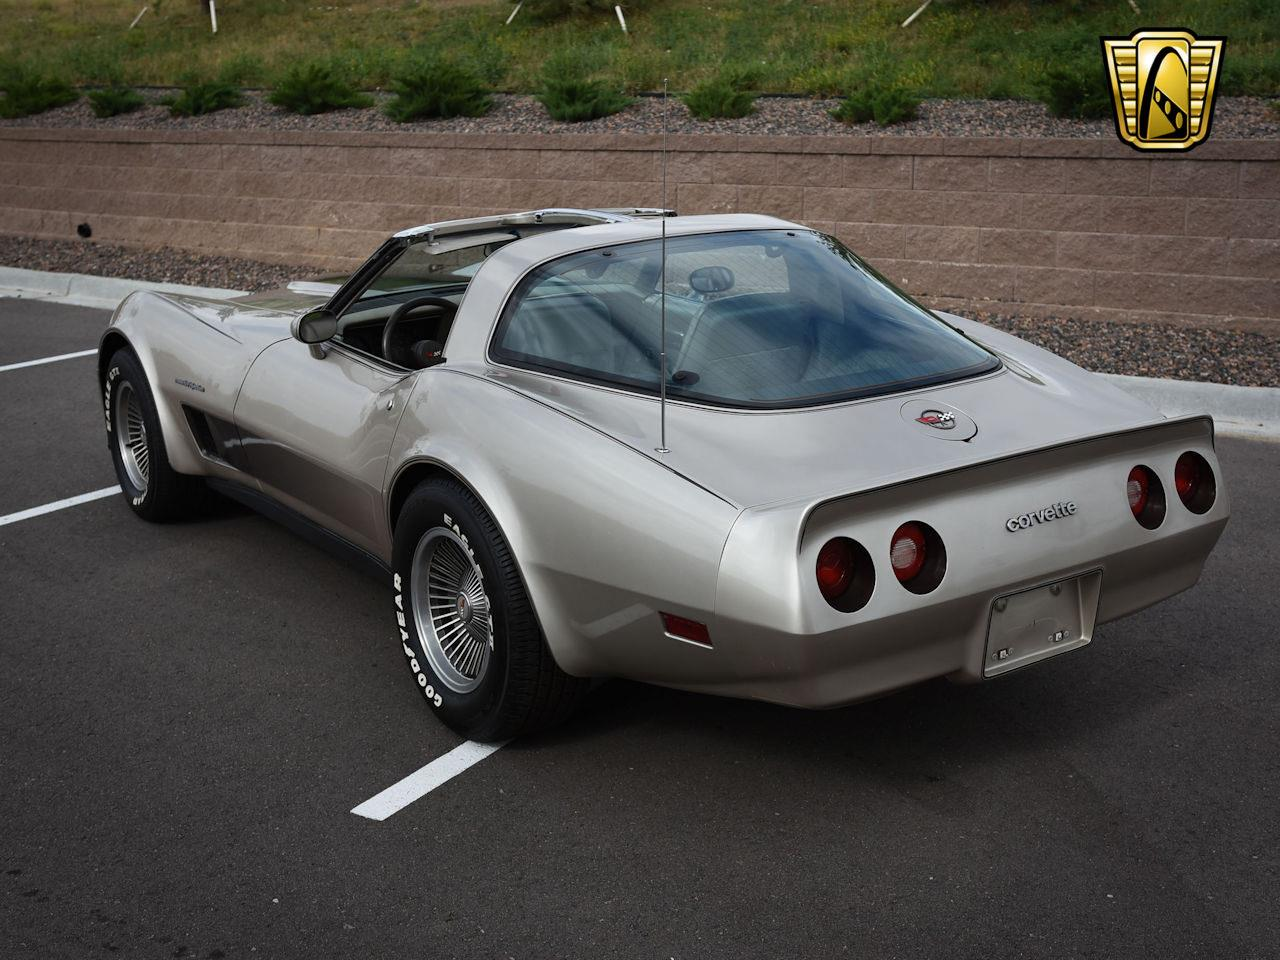 Large Picture of 1982 Corvette located in O'Fallon Illinois - $18,995.00 - LNRR